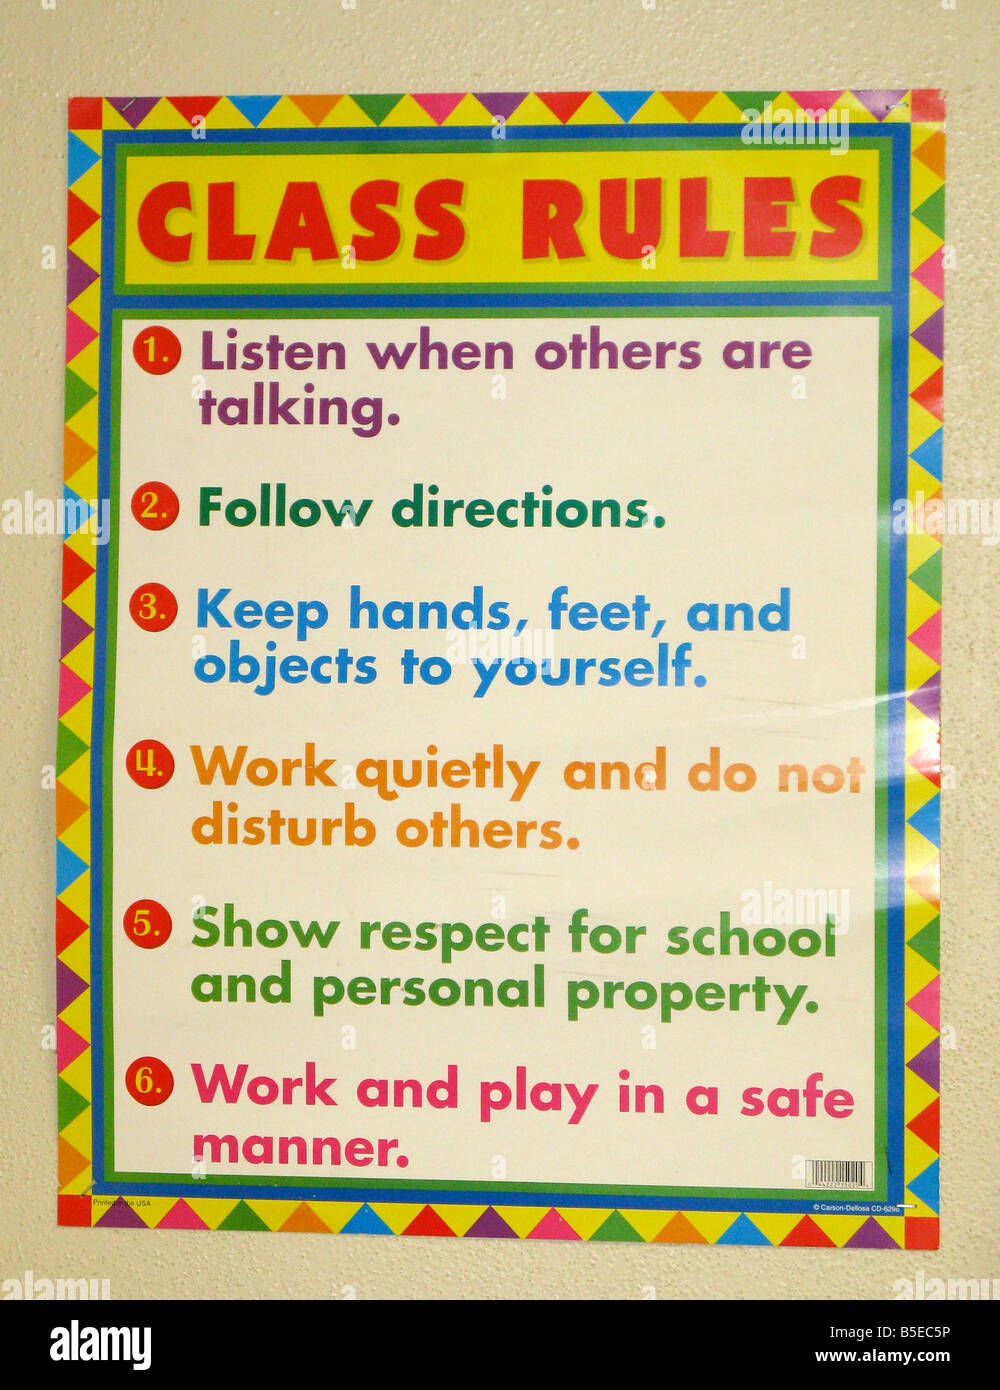 Classroom Rules Sign Stock Photo, Royalty Free Image ...